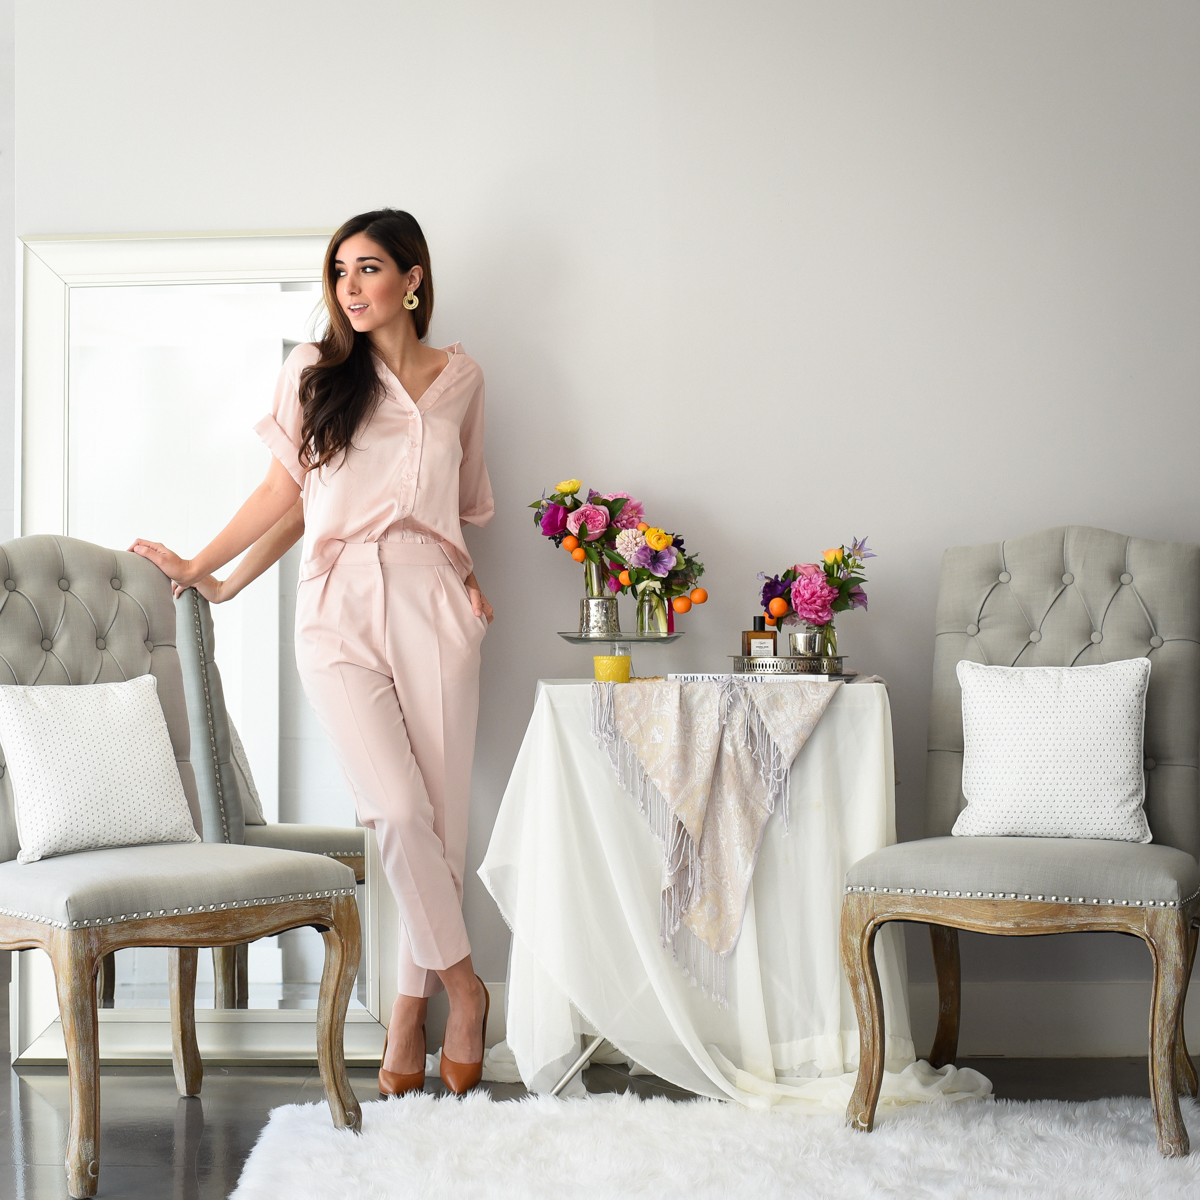 Floral arrangements by Margot Blair Floral. Subject and wardrobe styling: Jessi Ashfin of The Darling Detail.